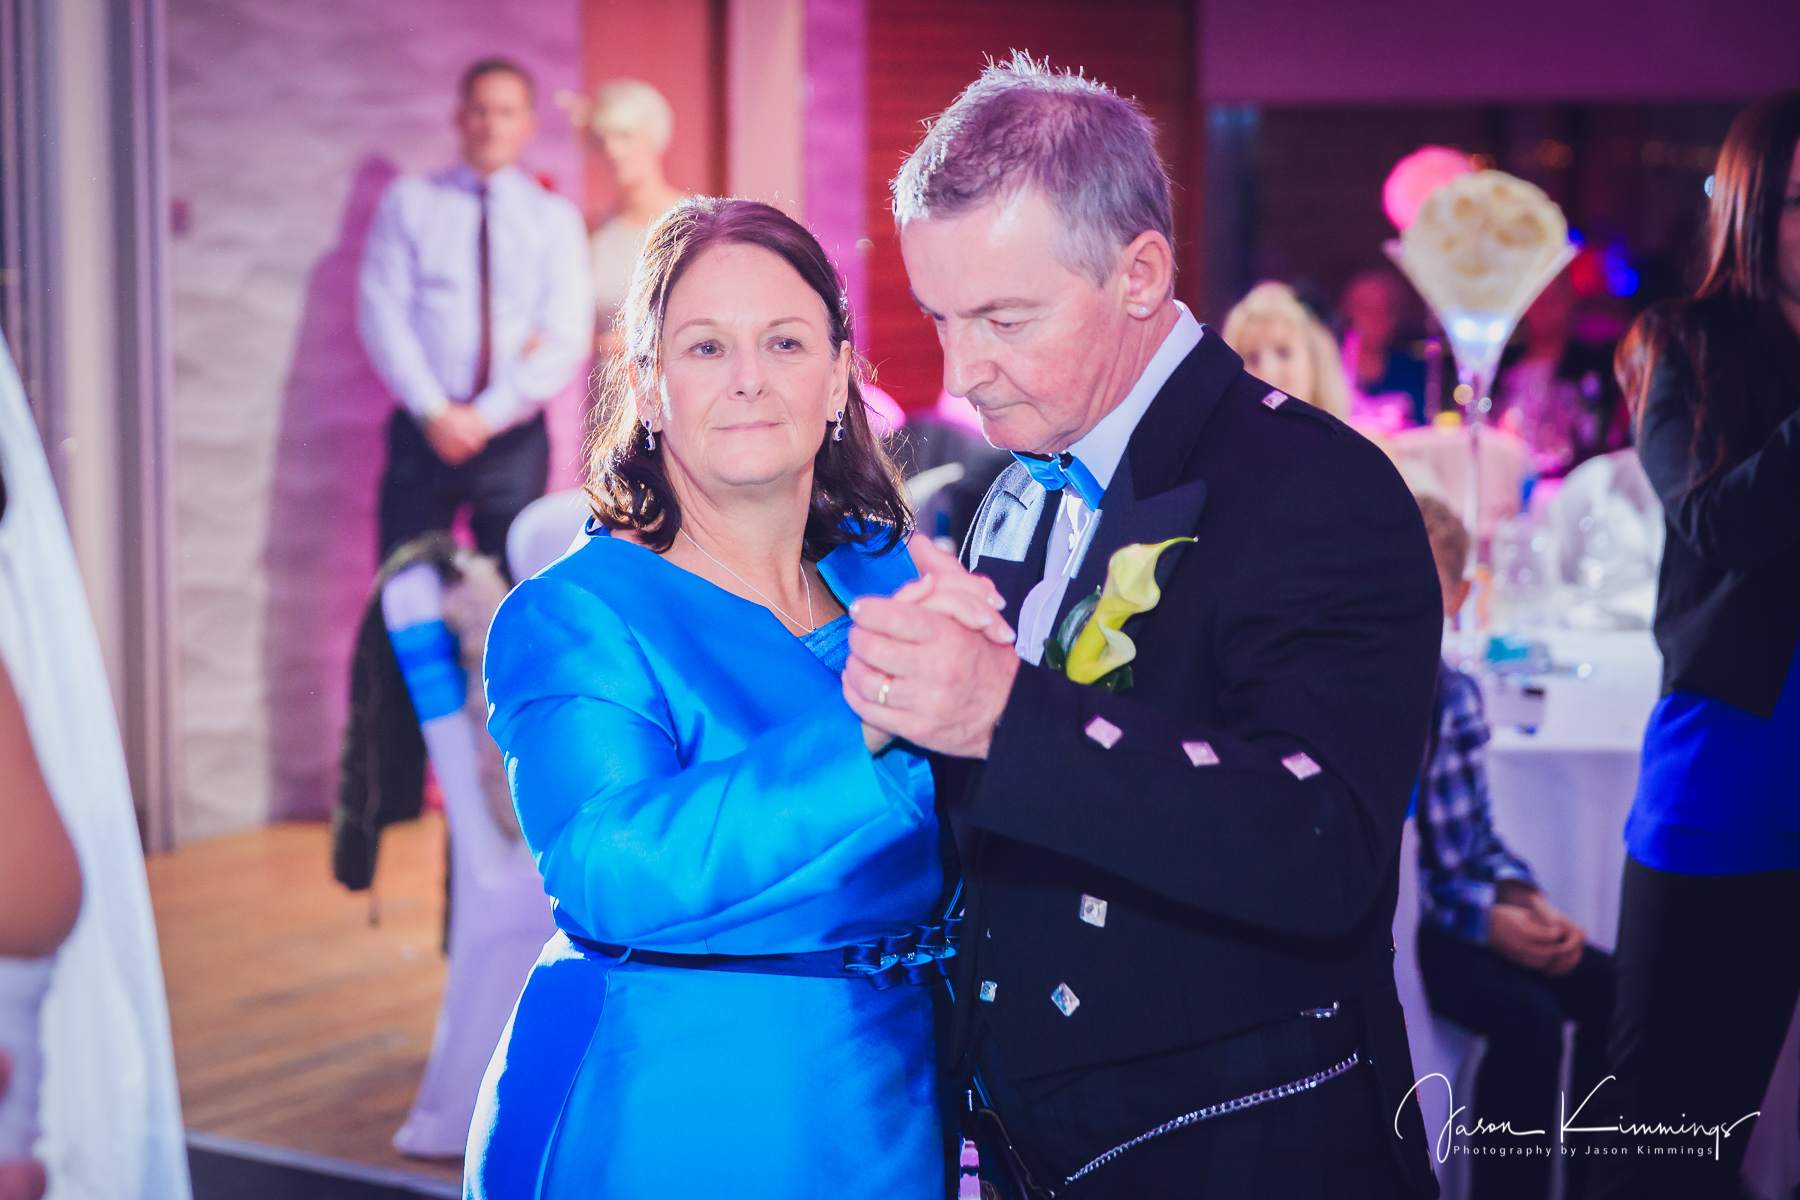 vu-wedding-photography-bathgate-29.jpg